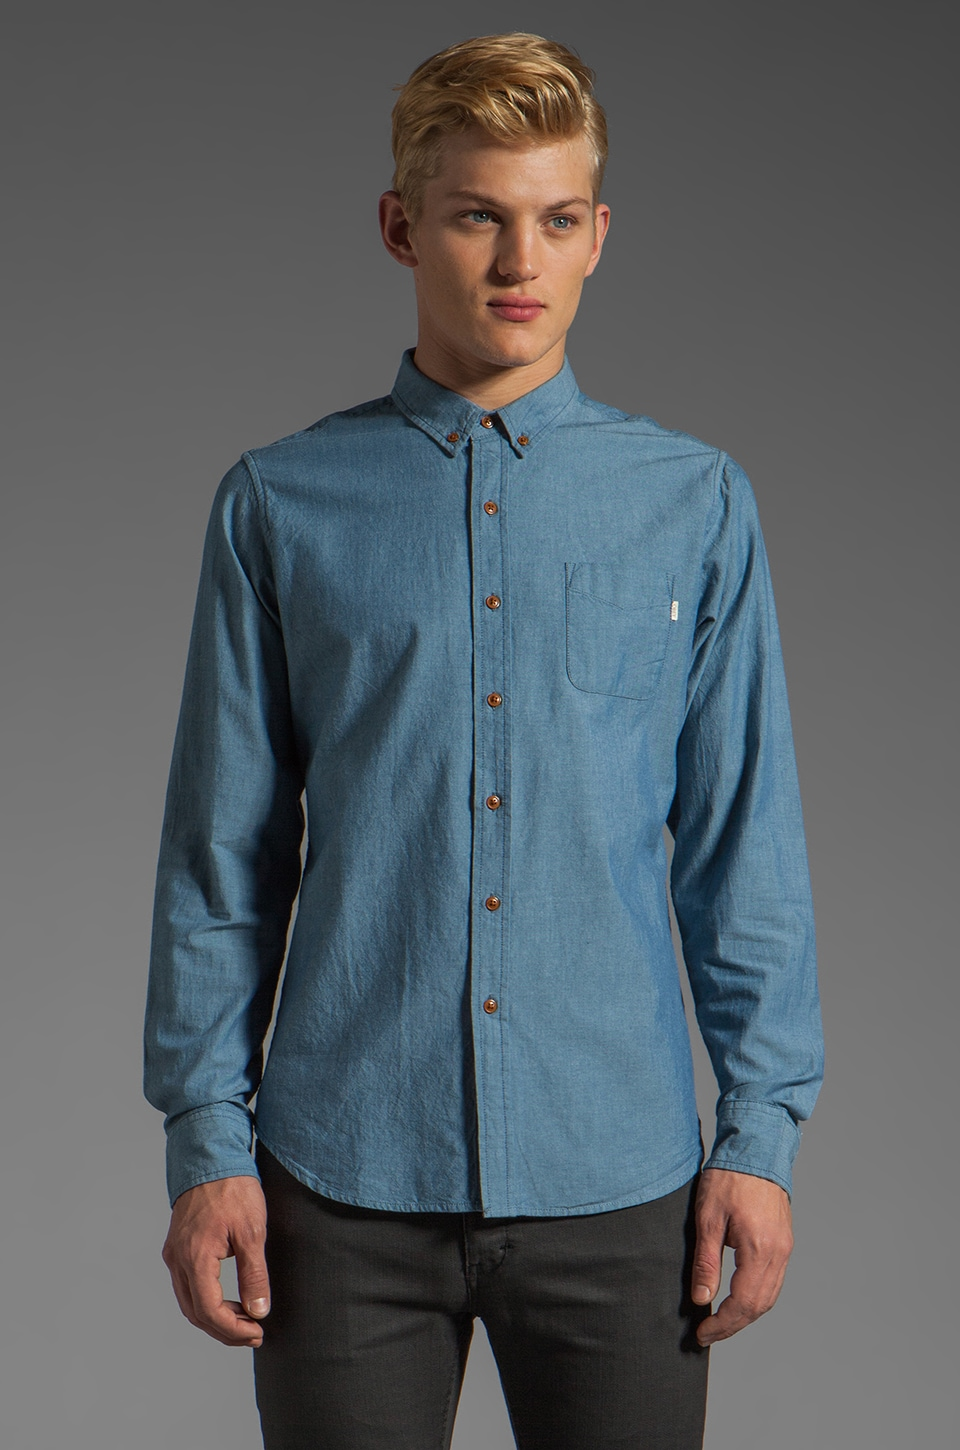 Obey Elden Shirt in Indigo